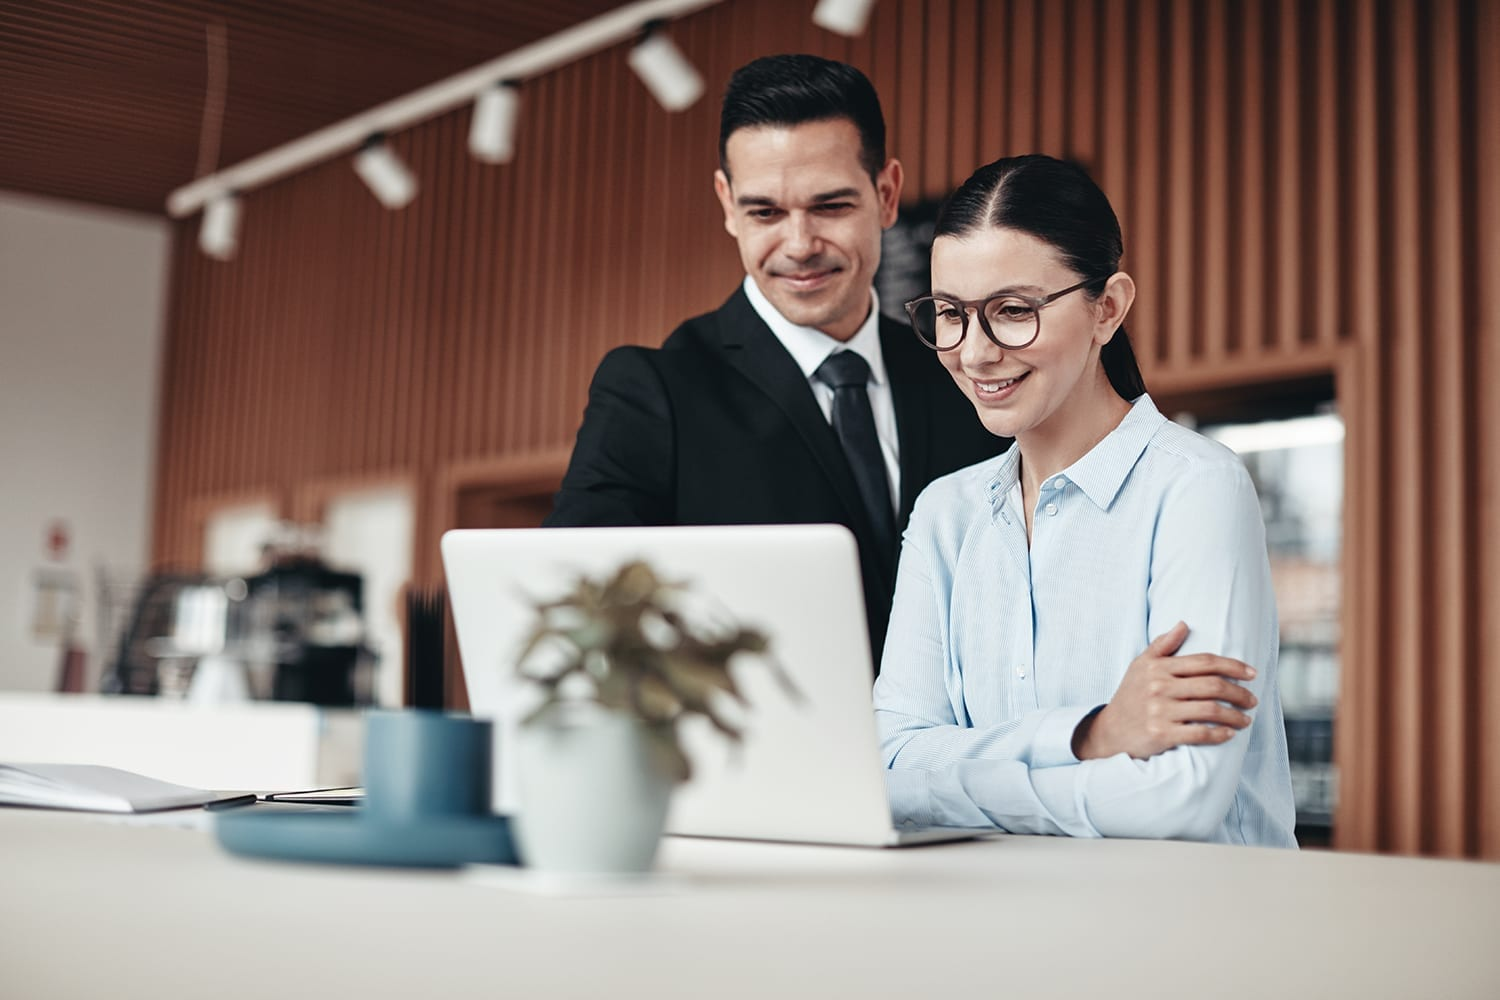 Two young businesspeople smiling while standing at a table going over notes and working on a laptop in an office